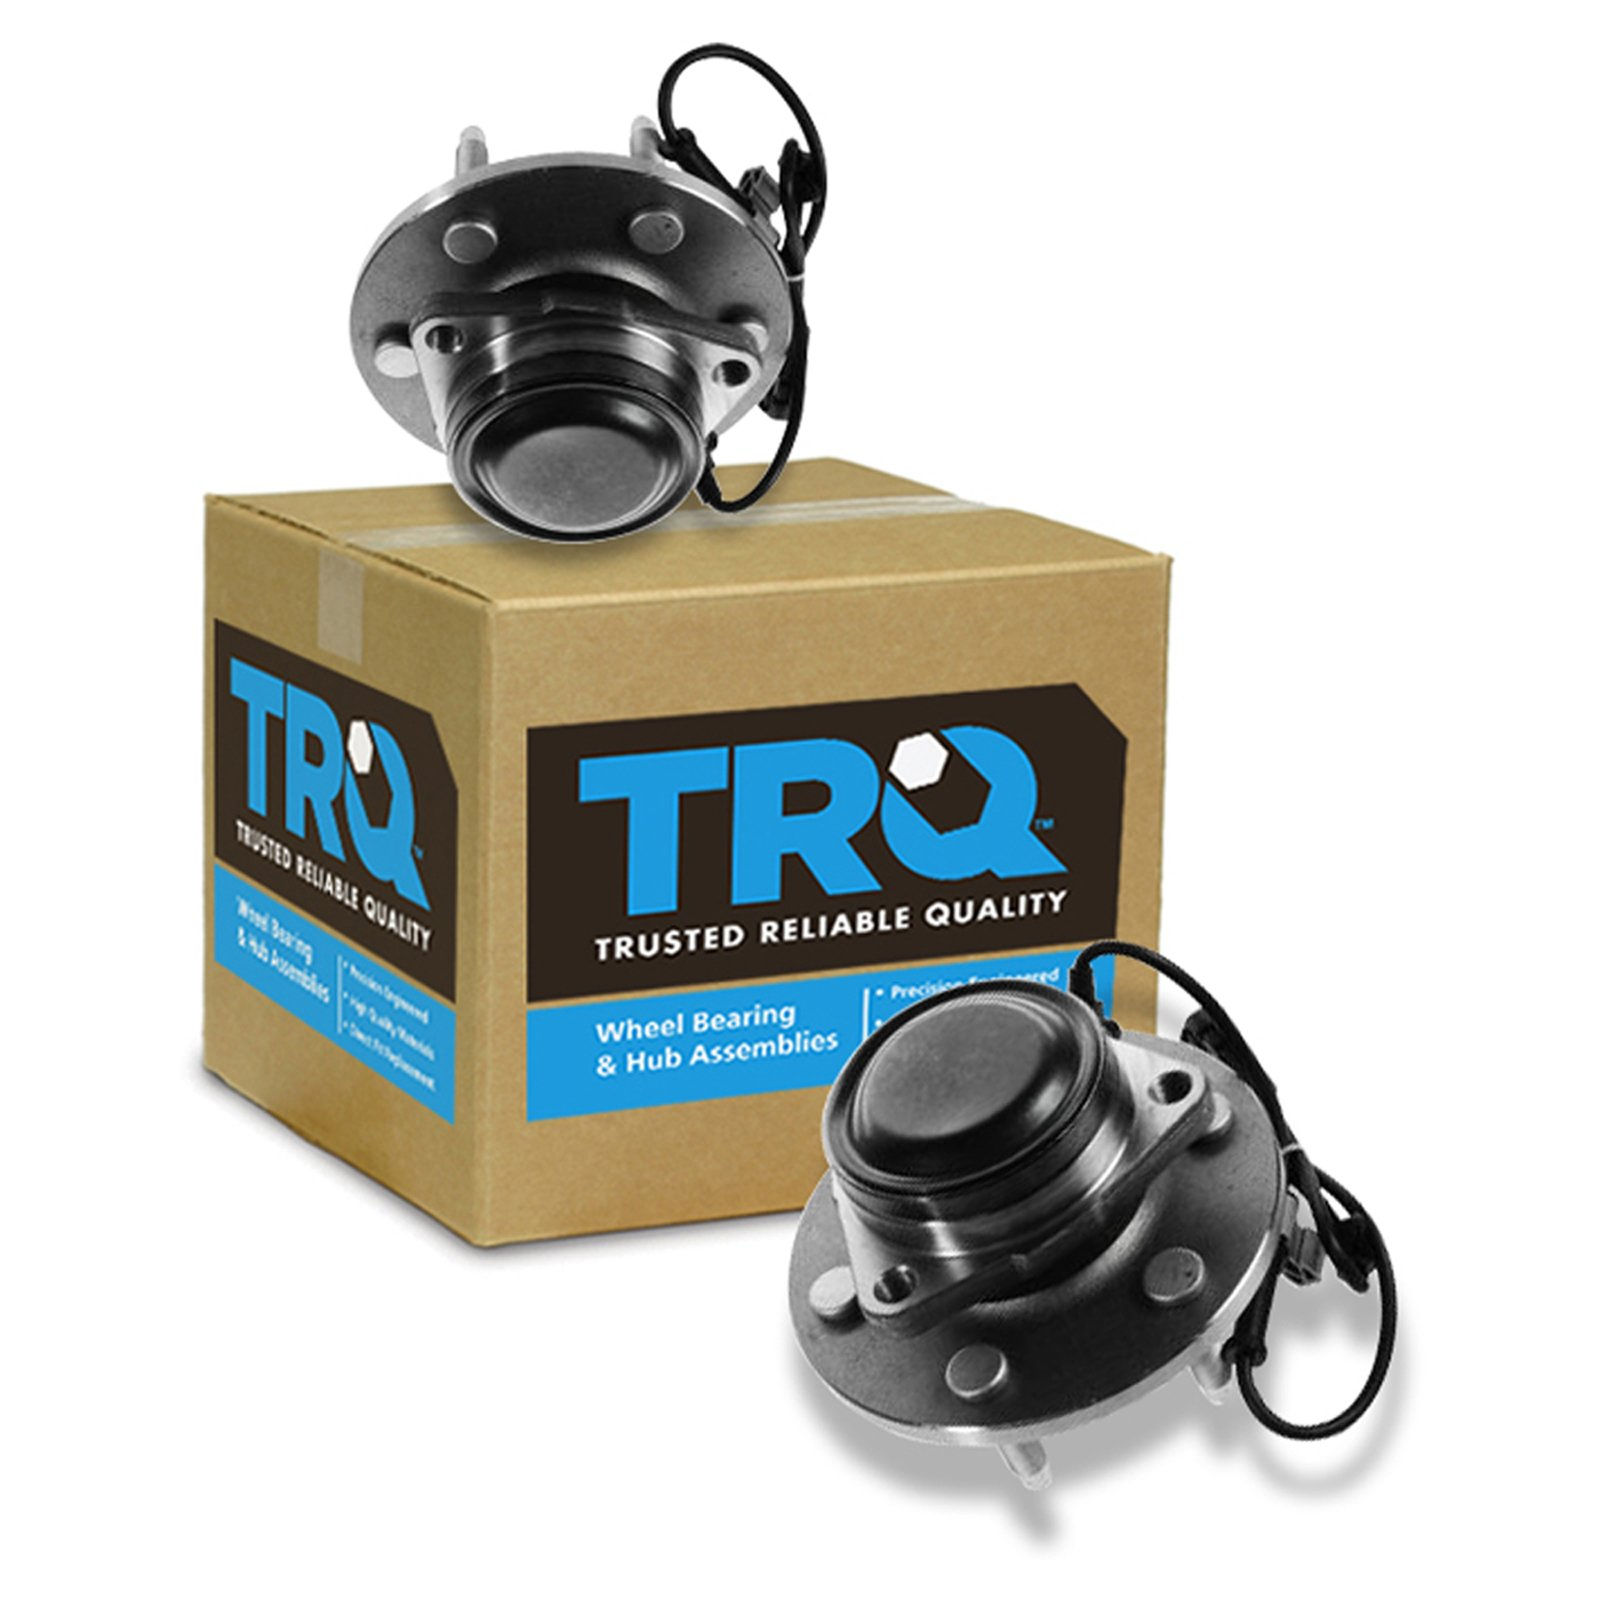 TRQ Front Wheel Bearing & Hub Assembly Pair for Chevy GMC Pickup Truck 2WD Van by TRQ